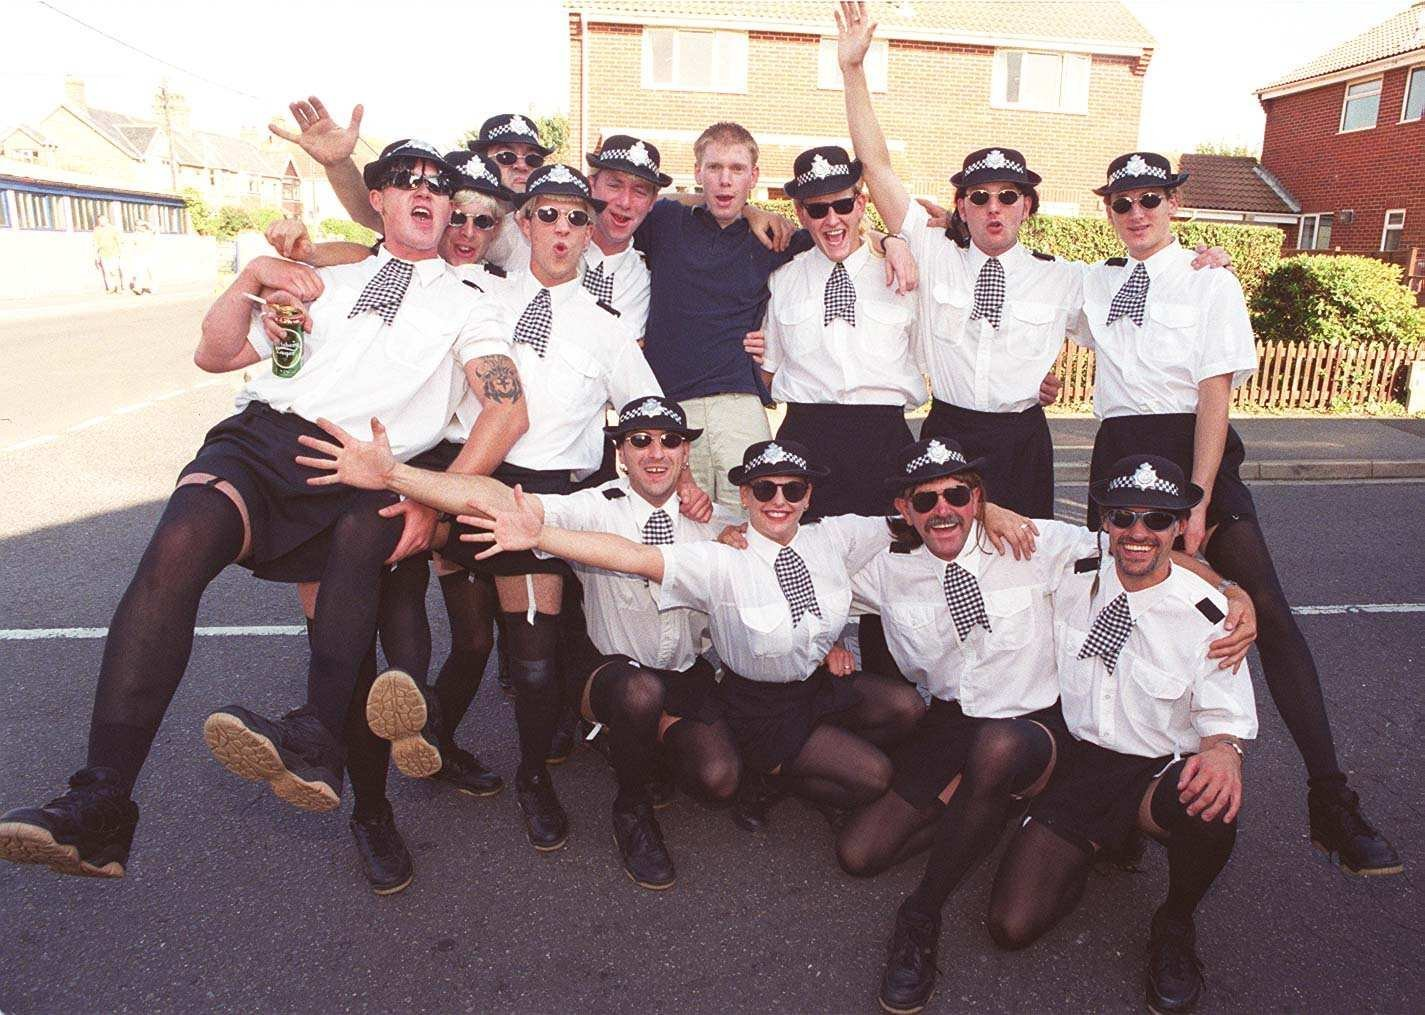 Pictures from Milford on Sea Carnival in 1999